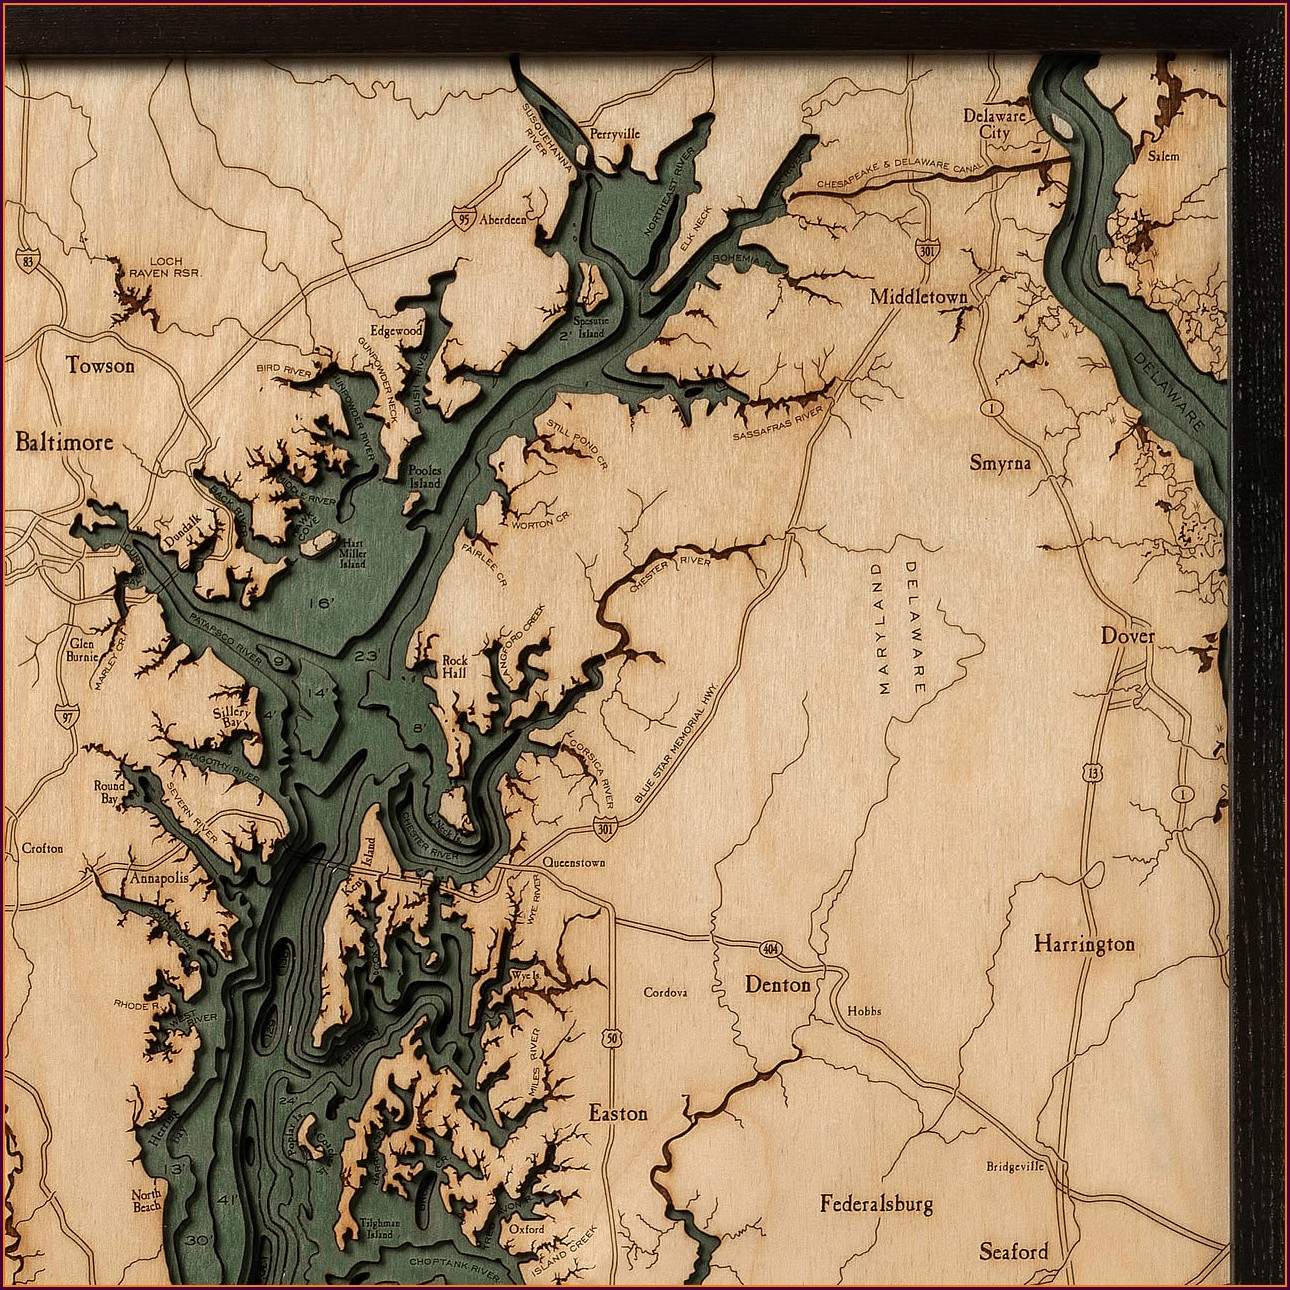 Chesapeake Bay Topographic Map